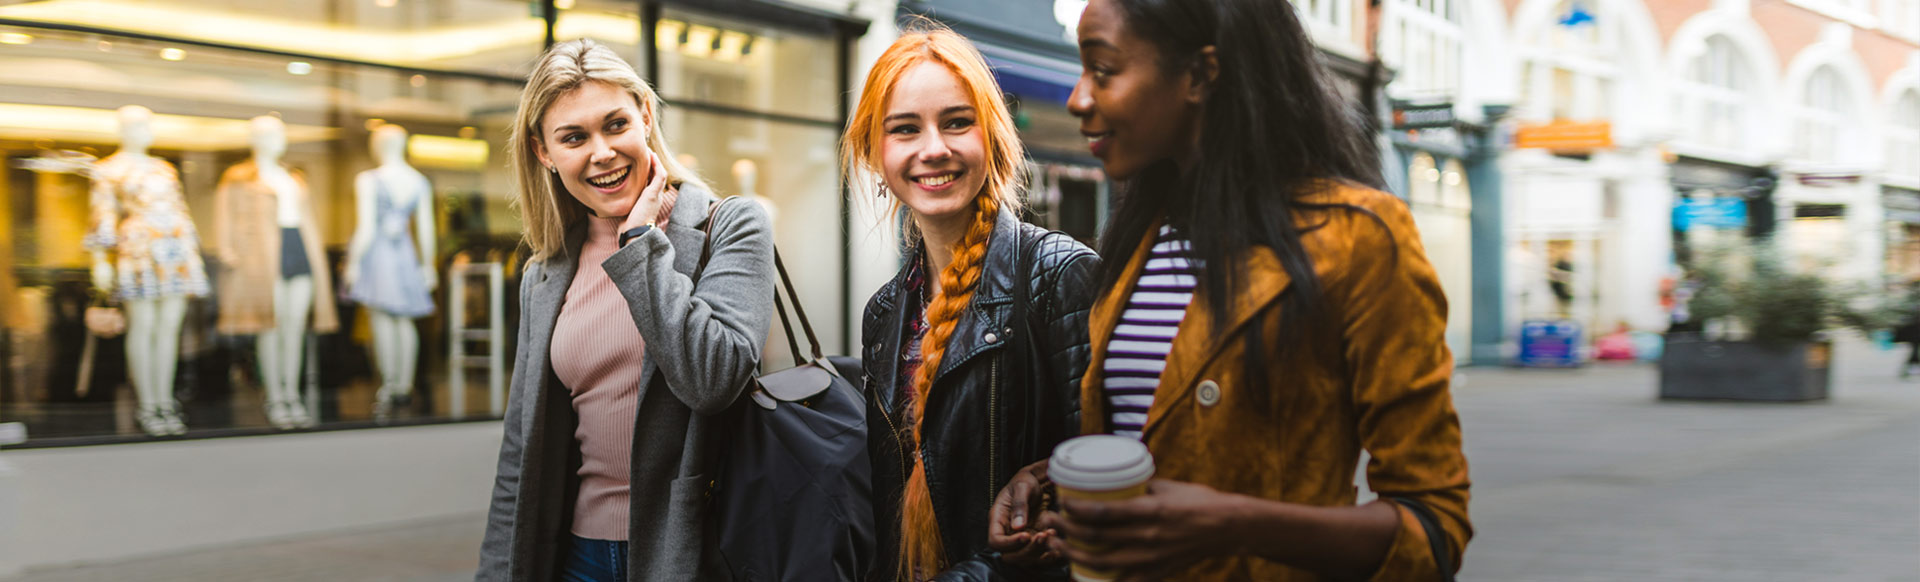 Three young women chatting on a shopping street